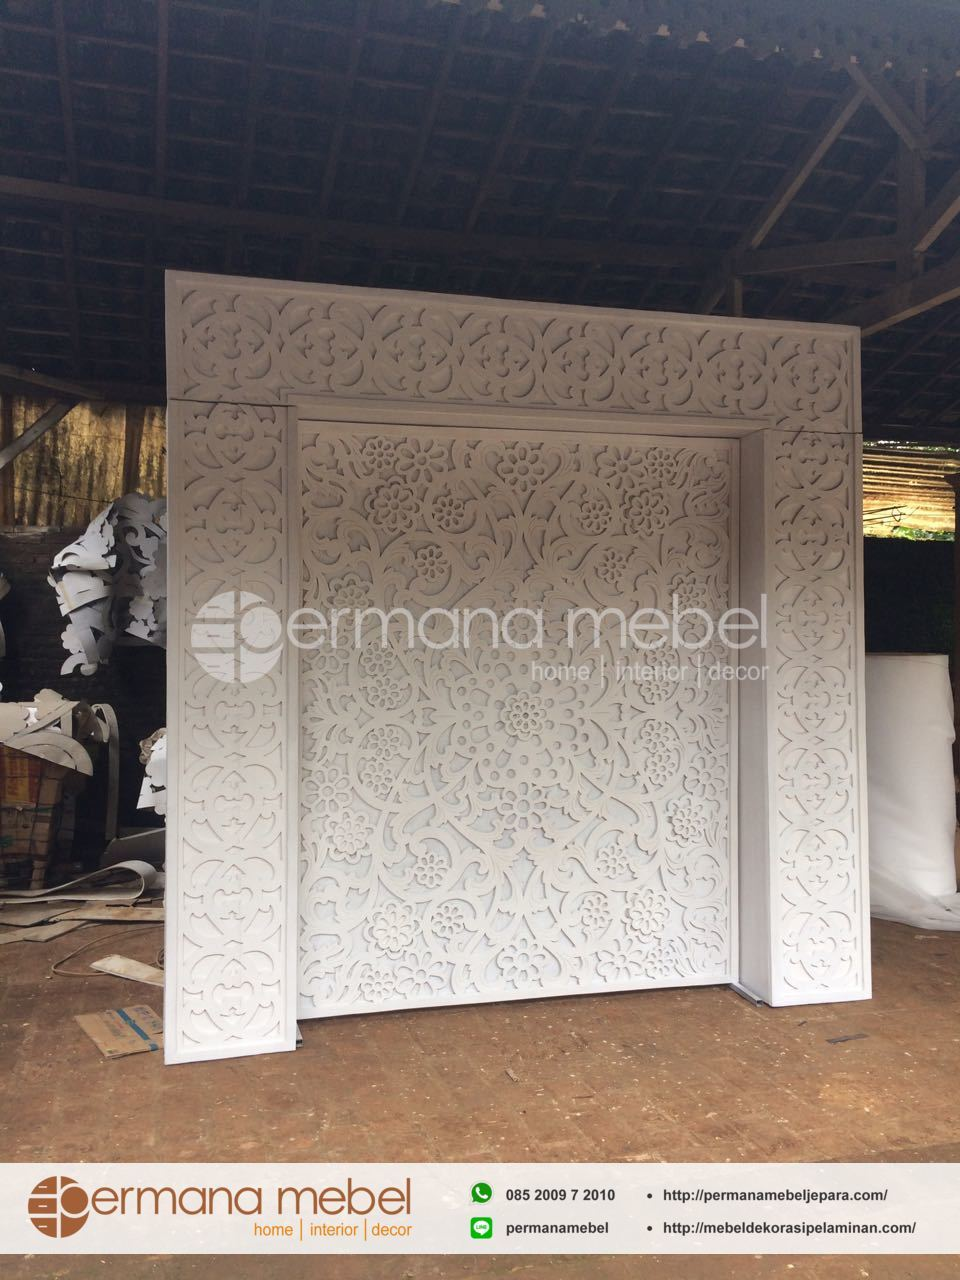 Photo Booth Pelaminan Ukir Spon Karet, Photobooth Ukir Klasik Karet, Photobooth Ukir Spon Karet, Photobooth Pelaminan Ukir Karet,Photobooth Karet Ukir Bunga, Photobooth Karet Spon Terbaru, Photo Booth Background Gebyok, Photo Booth Pelaminan Karet, Photo Booth Pelaminan Spon Eva, Dekorasi Pelaminan Karet Terbaru, Dekorasi Minimalis Karet, Dekor Gebyok Karet, Set Pelaminan Karet - Spon Eva - Busa Ati, Set Dekorasi Pelaminan Spon Eva - Karet, Dekorasi Pelaminan Karet Terbaru, Dekorasi Pelaminan Karet (Spon Eva), Dekorasi Pelaminan Ukir Gold, Gebyok Dekorasi Pelaminan Ukir, Gebyok Dekorasi Pelaminan Klasik, ahli dekorasi pelaminan, ahli dekorasi pelaminan jakarta, ahli dekorasi perkawinan, ahli dekorasi perkawinan jakarta, ahli dekorasi pernikahan, ahli dekorasi pernikahan jakarta, ahli wedding decoration, alat pesta, Dekorasi, dekorasi akad nikah, dekorasi catering, dekorasi gedung, dekorasi gereja, dekorasi jepara, dekorasi panggung, dekorasi panggung jakarta, dekorasi pelaminan, dekorasi pelaminan gedung, dekorasi pelaminan internasional, dekorasi pelaminan jakarta, dekorasi pelaminan jawa, dekorasi pelaminan jepara, dekorasi pelaminan modern, dekorasi pelaminan rumah, dekorasi perkawinan, dekorasi perkawinan gedung, dekorasi perkawinan internasional, dekorasi perkawinan jakarta, dekorasi perkawinan jawa, dekorasi perkawinan rumah, dekorasi pernikahan, dekorasi pernikahan gedung, dekorasi pernikahan jakarta, dekorasi pernikahan jawa, dekorasi pernikahan modern, dekorasi pernikahan rumah, dekorasi rumah, dekorasi siraman, dekorasi tenda, dekorasi ulang tahun, dekorasi wedding, dekorasi wedding jakarta, dekorator pelaminan, dekorator perkawinan, dekorator pernikahan, dekorator wedding, gambar dekorasi pelaminan, gambar dekorasi pelaminan jakarta, gambar dekorasi perkawinan, gambar dekorasi perkawinan jakarta, gambar dekorasi pernikahan, gambar dekorasi pernikahan jakarta, Gebyok Dekorasi Pernikahan, mariage designer, marriage decoration, marriage decoration jakarta, marriage decorator, mebel dekorasi pelaminan, Meja Tempat Vas Bunga, pelaminan, perkawinan, pernikahan, sewa alat pesta, special wedding decoration, special wedding decorator, special wedding jakarta, tema unik dekorasi pelaminan, tema unik dekorasi perkawinan, tema unik dekorasi pernikahan, wedding, wedding decoration, wedding decoration jakarta, wedding dekorasi jakarta, wedding dekorator jakarta, wedding design, wedding design jakarta, wedding designer, wedding designer jakarta, permana mebel, permana mebel jepara, mebel dekorasi pelaminan